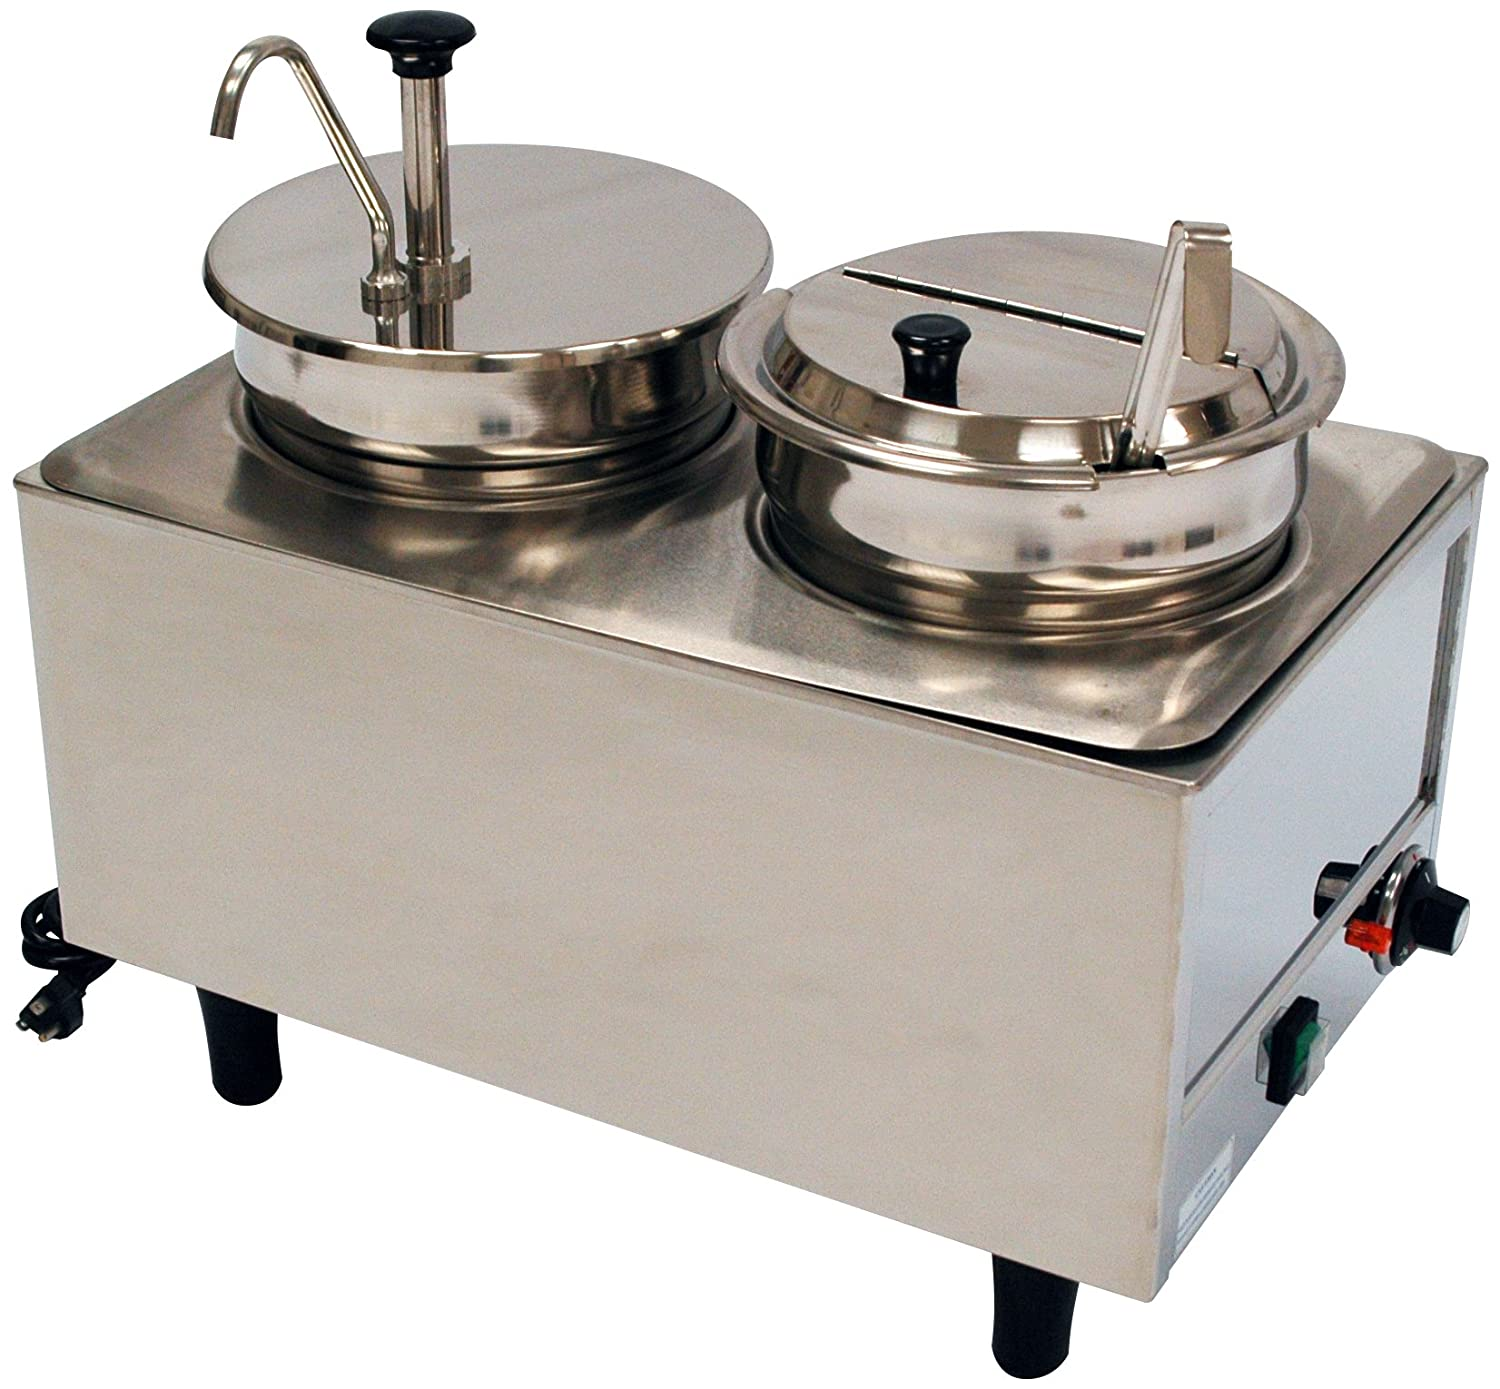 2 21 L Benchmark USA 51073P Dual Well Warmer, Stainless Steel 13 W 17 H 7 Quart Wells and 1 Stainless Steel Pump